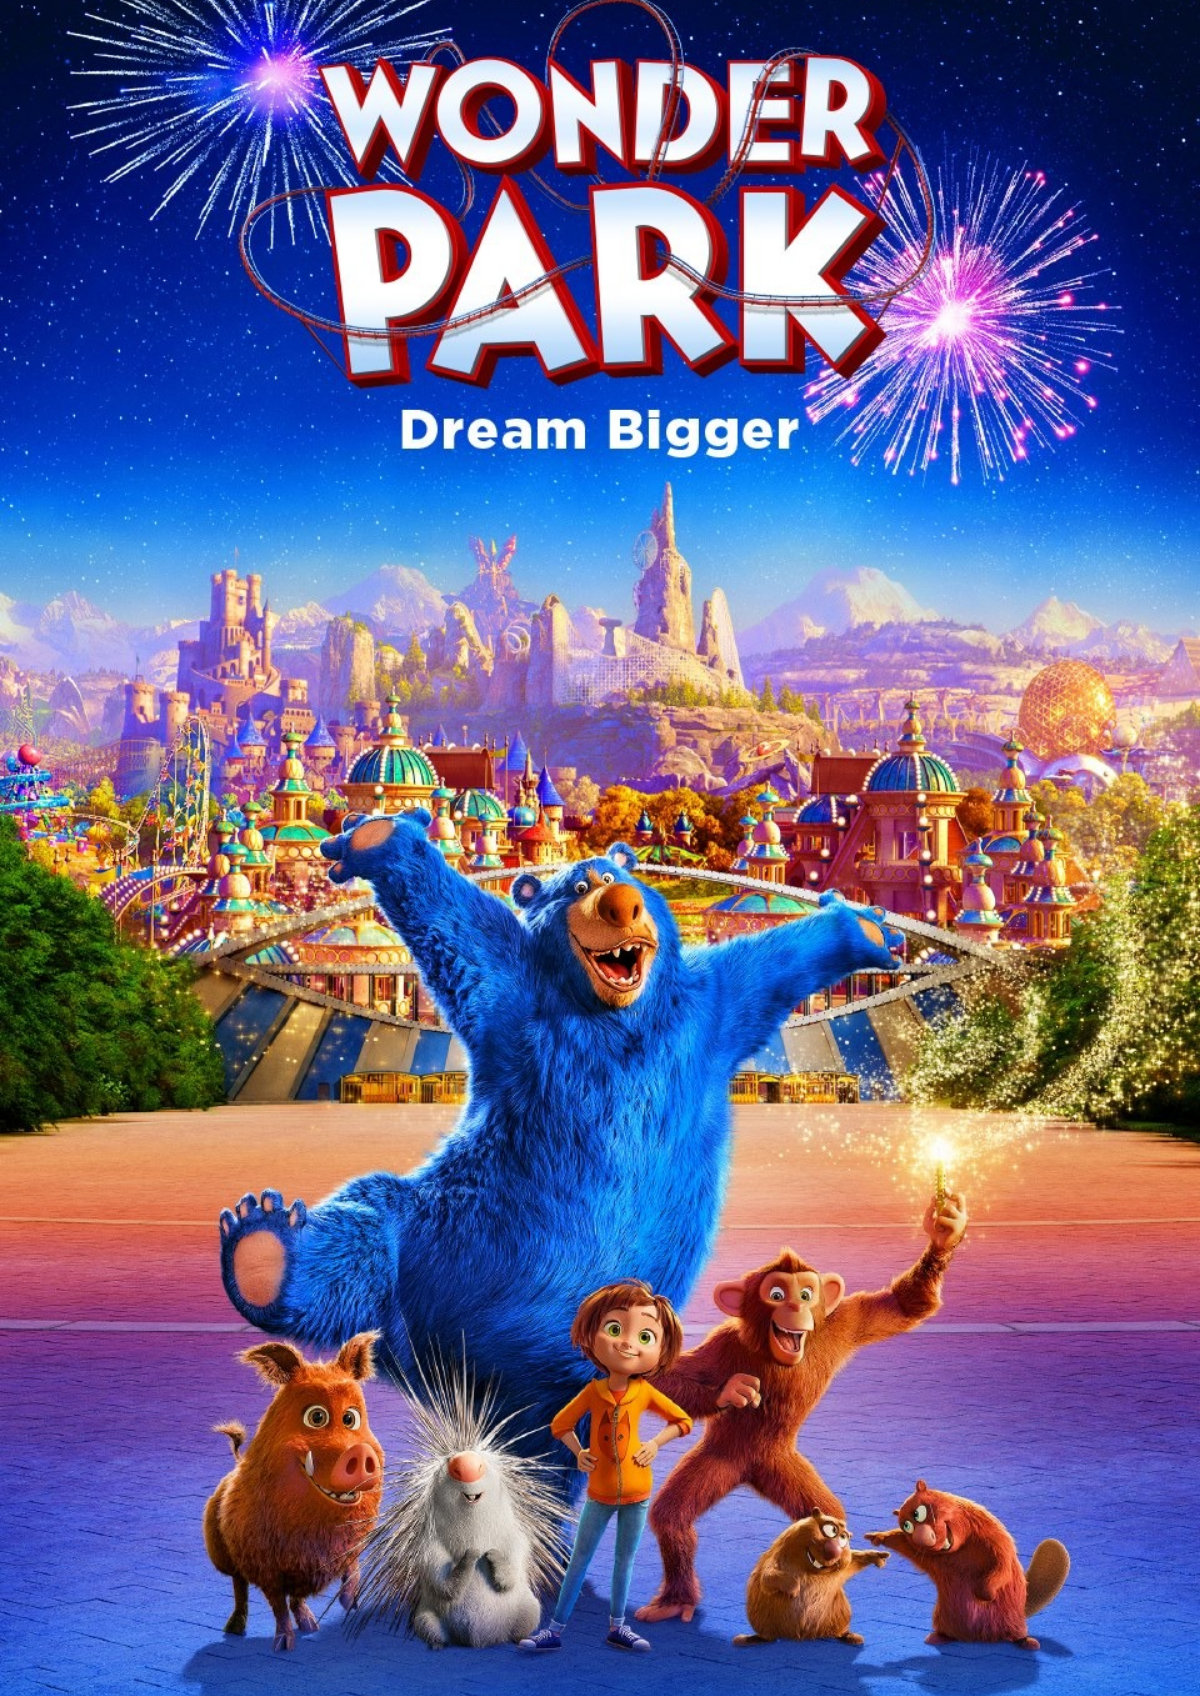 'Wonder Park' movie poster